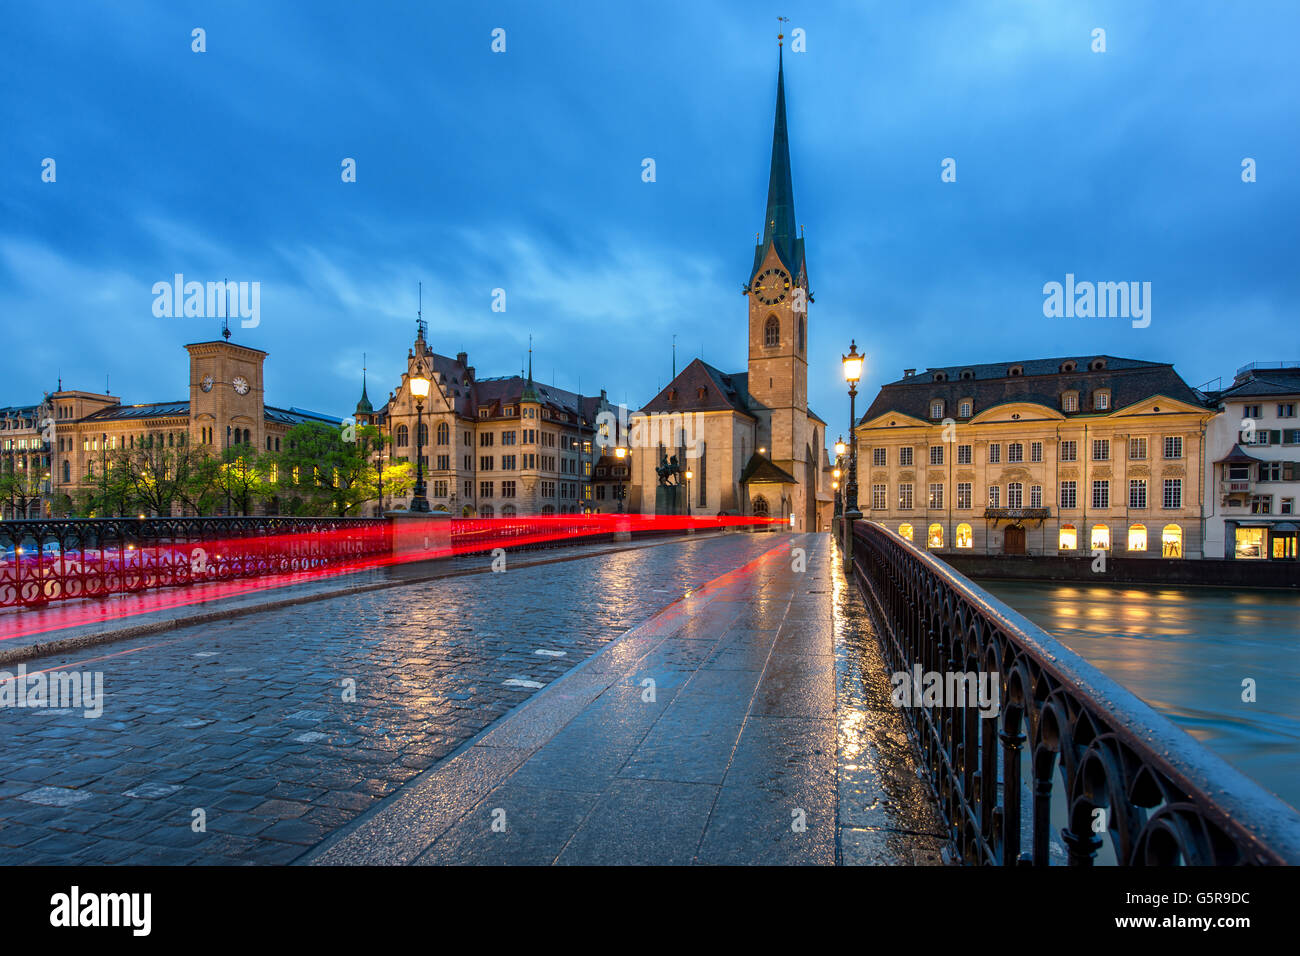 Zurich skyline in Switzerland. Image of Zurich during dramatic twlight in Switzerland. Zurich is large city of Switzerland. - Stock Image